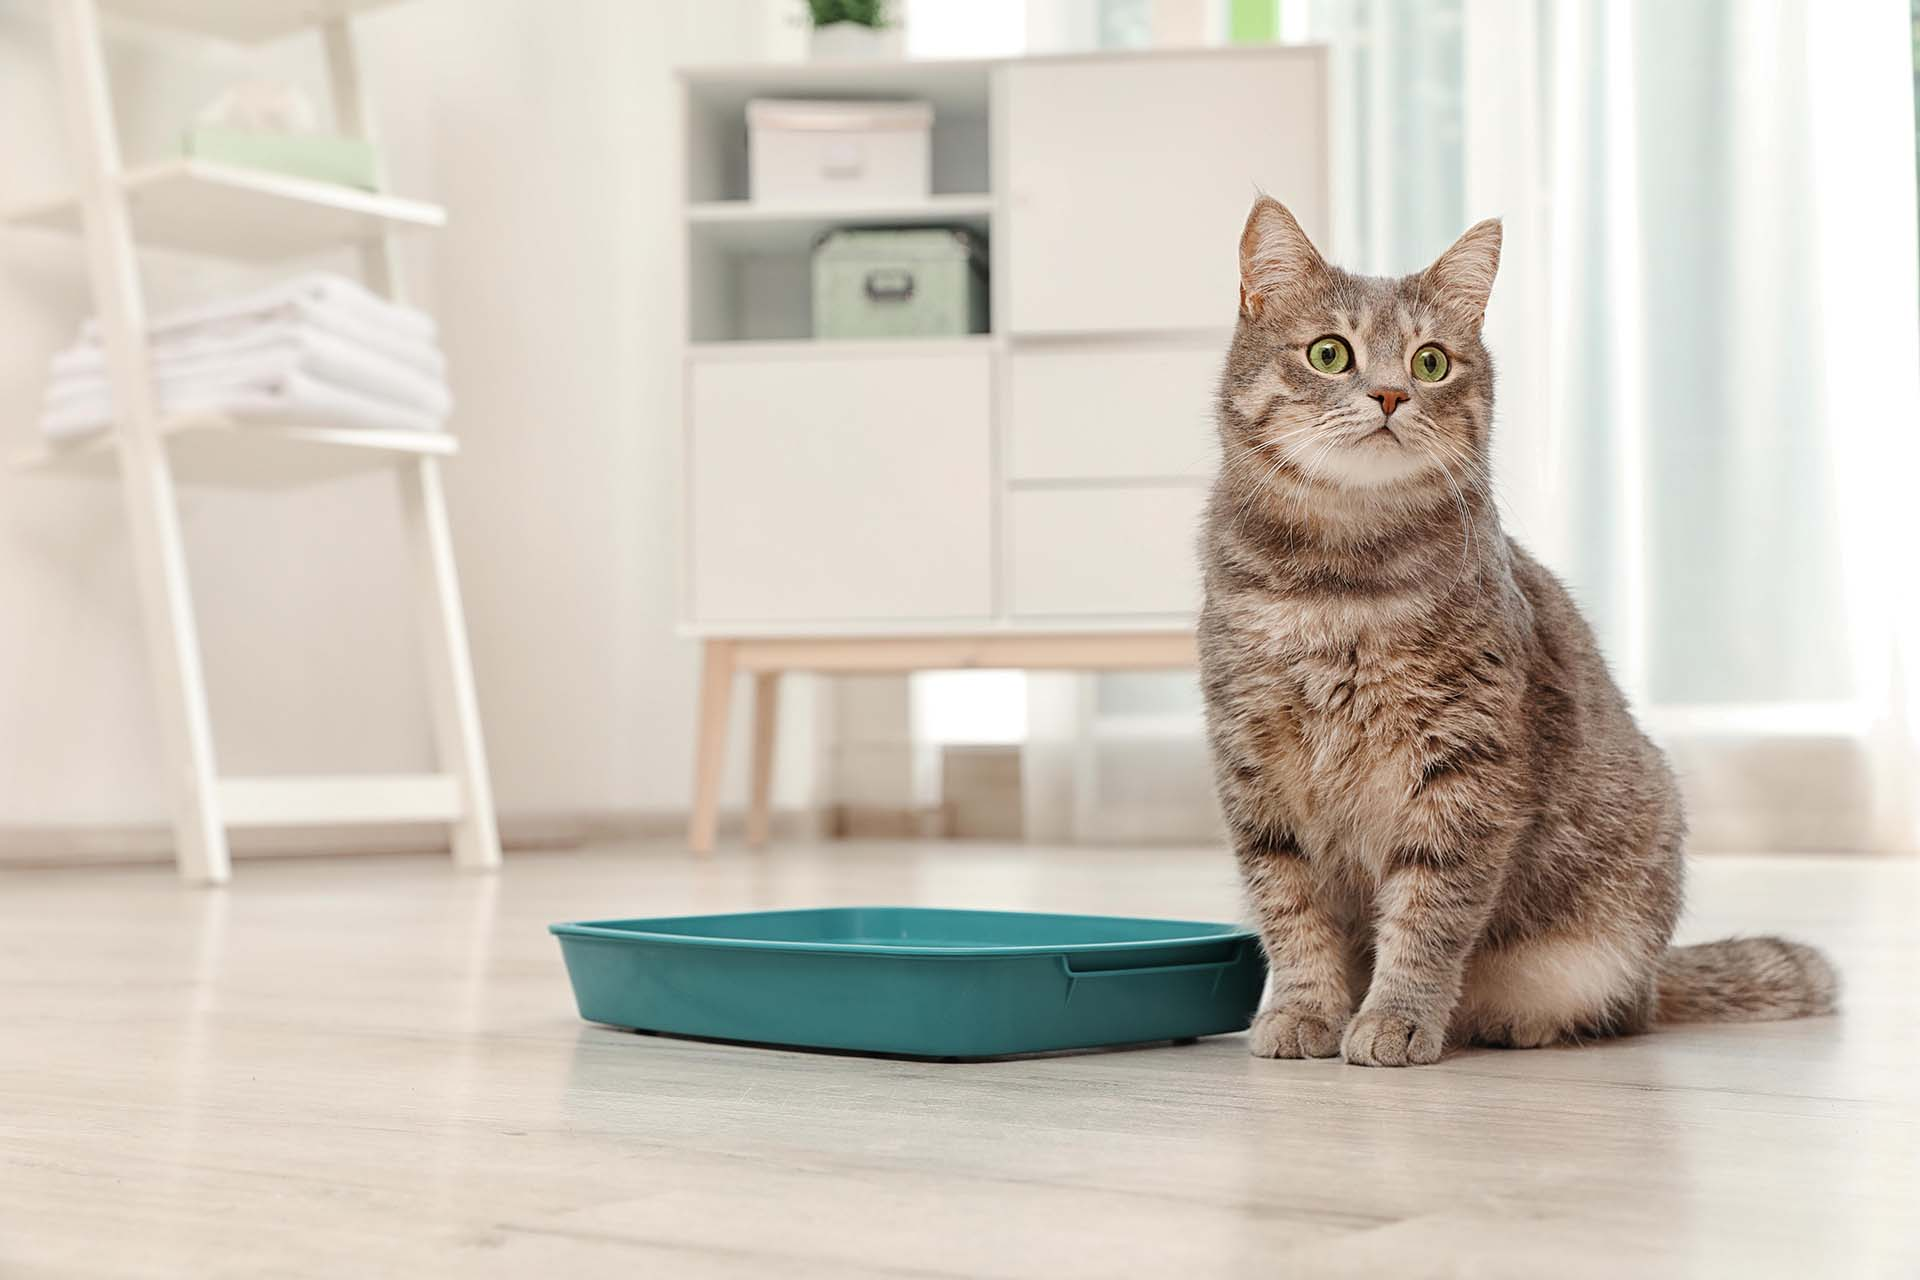 Why is my Cat Eating Kitty Litter?